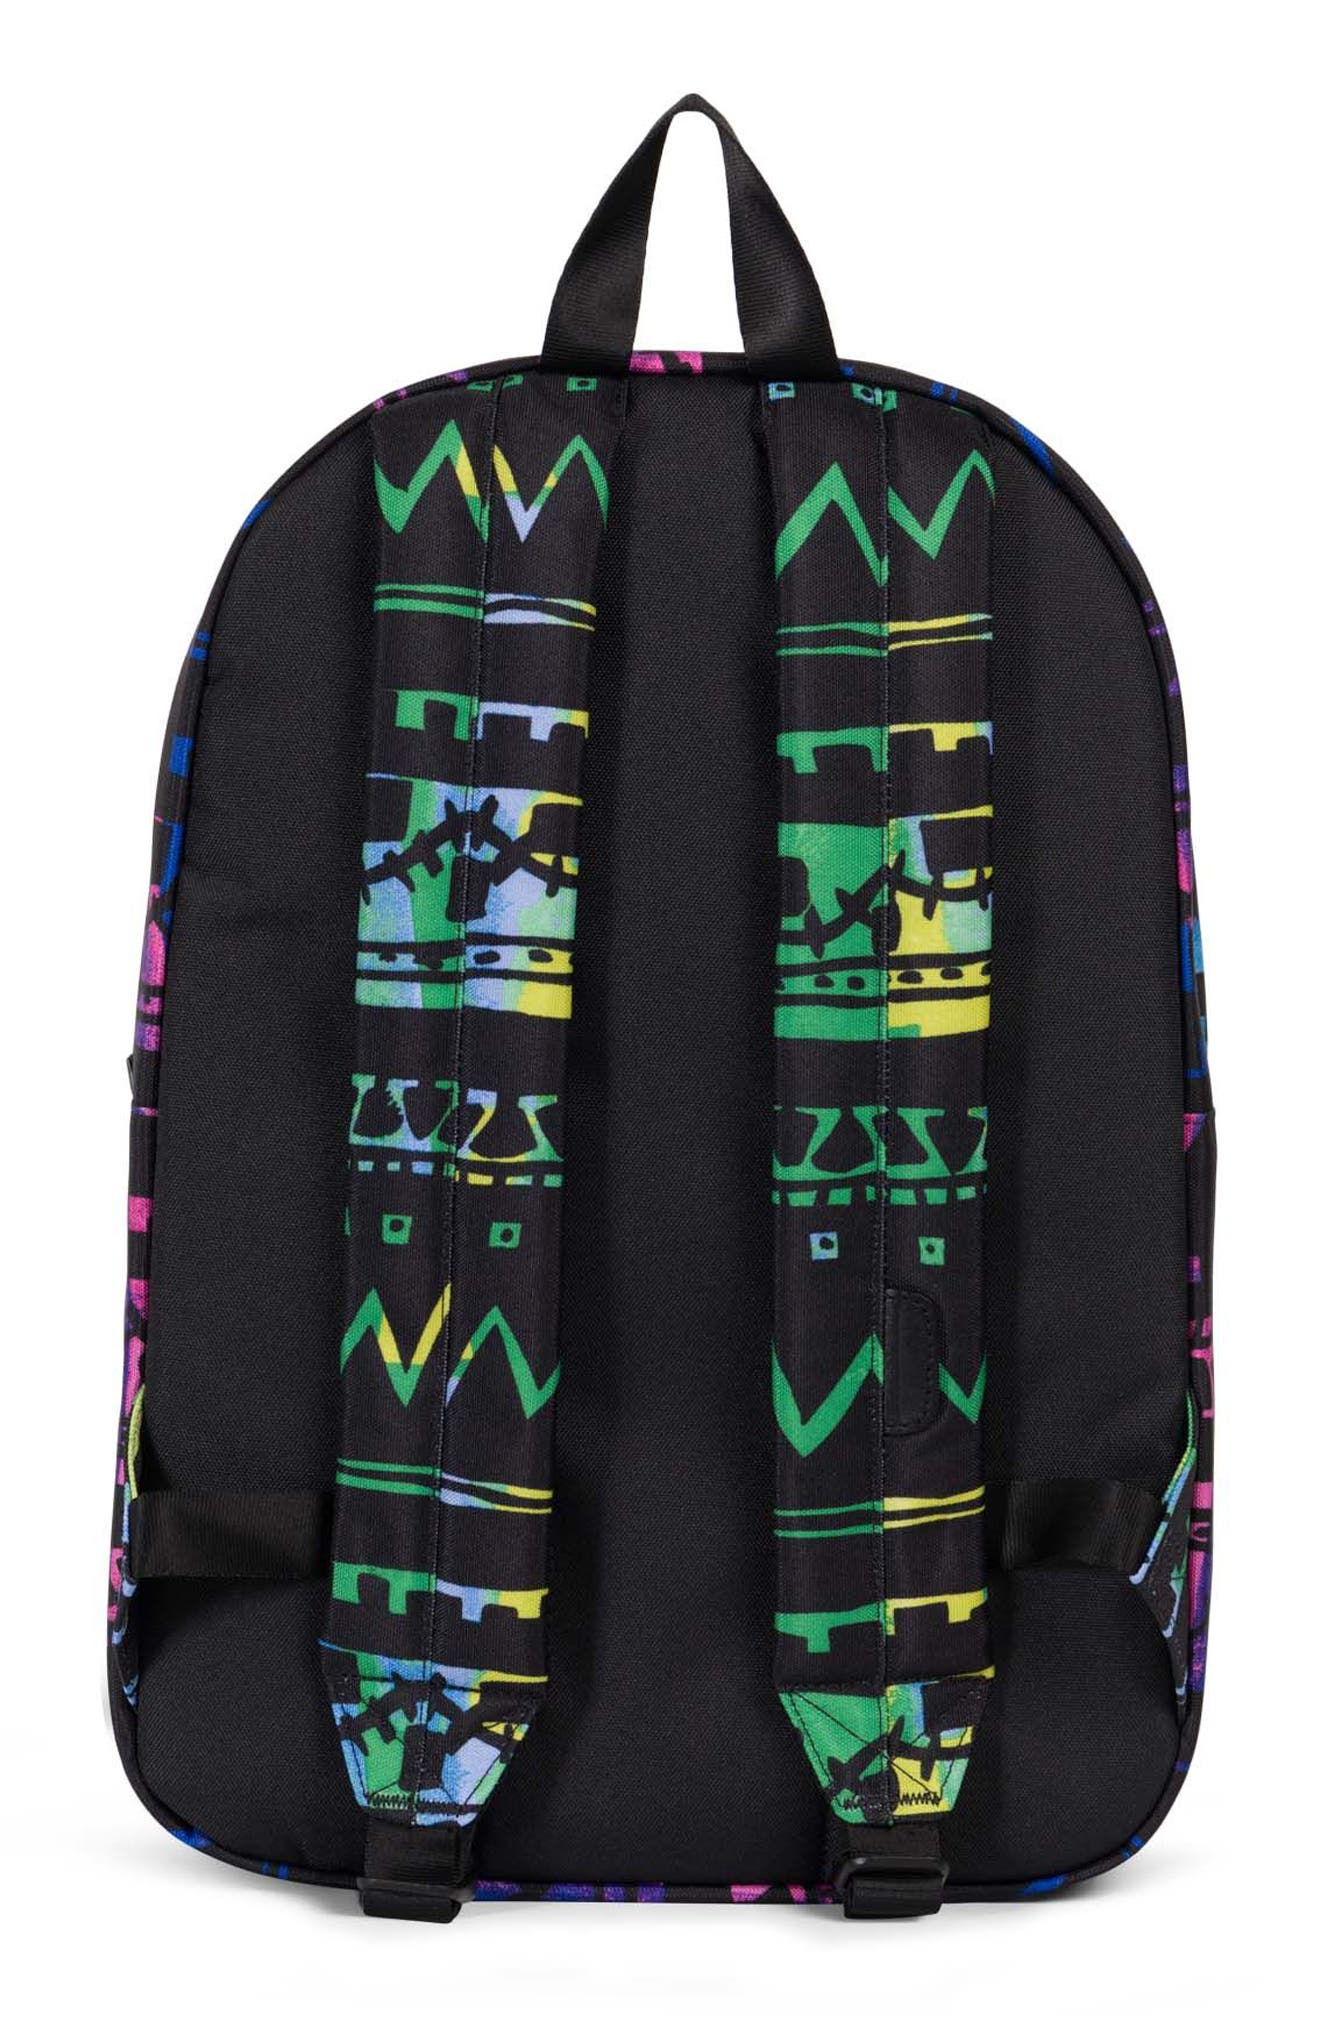 Hoffman Winlaw Backpack,                             Alternate thumbnail 8, color,